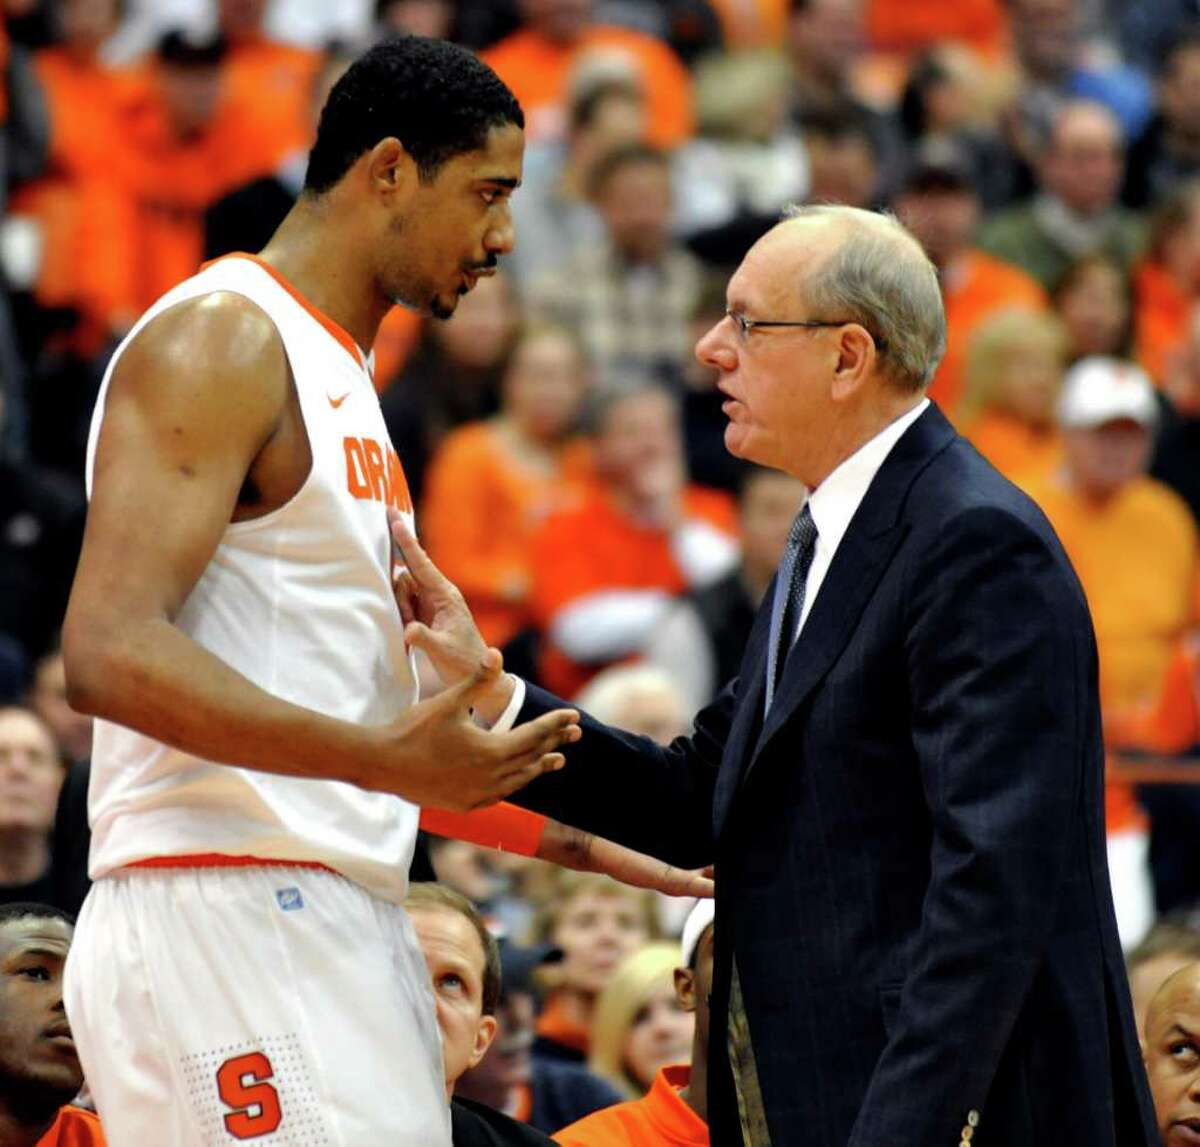 FILE - In this Jan. 15, 2011, file photo, Syracuse head coach Jim Boeheim, right, talks with Fab Melo during the first half against Cincinnati in an NCAA college basketball game in Syracuse, N.Y. Melo did not travel with the team to Pittsburgh and the university says he won't take part in the NCAA tournament due to an eligibility issue. The school would not elaborate.